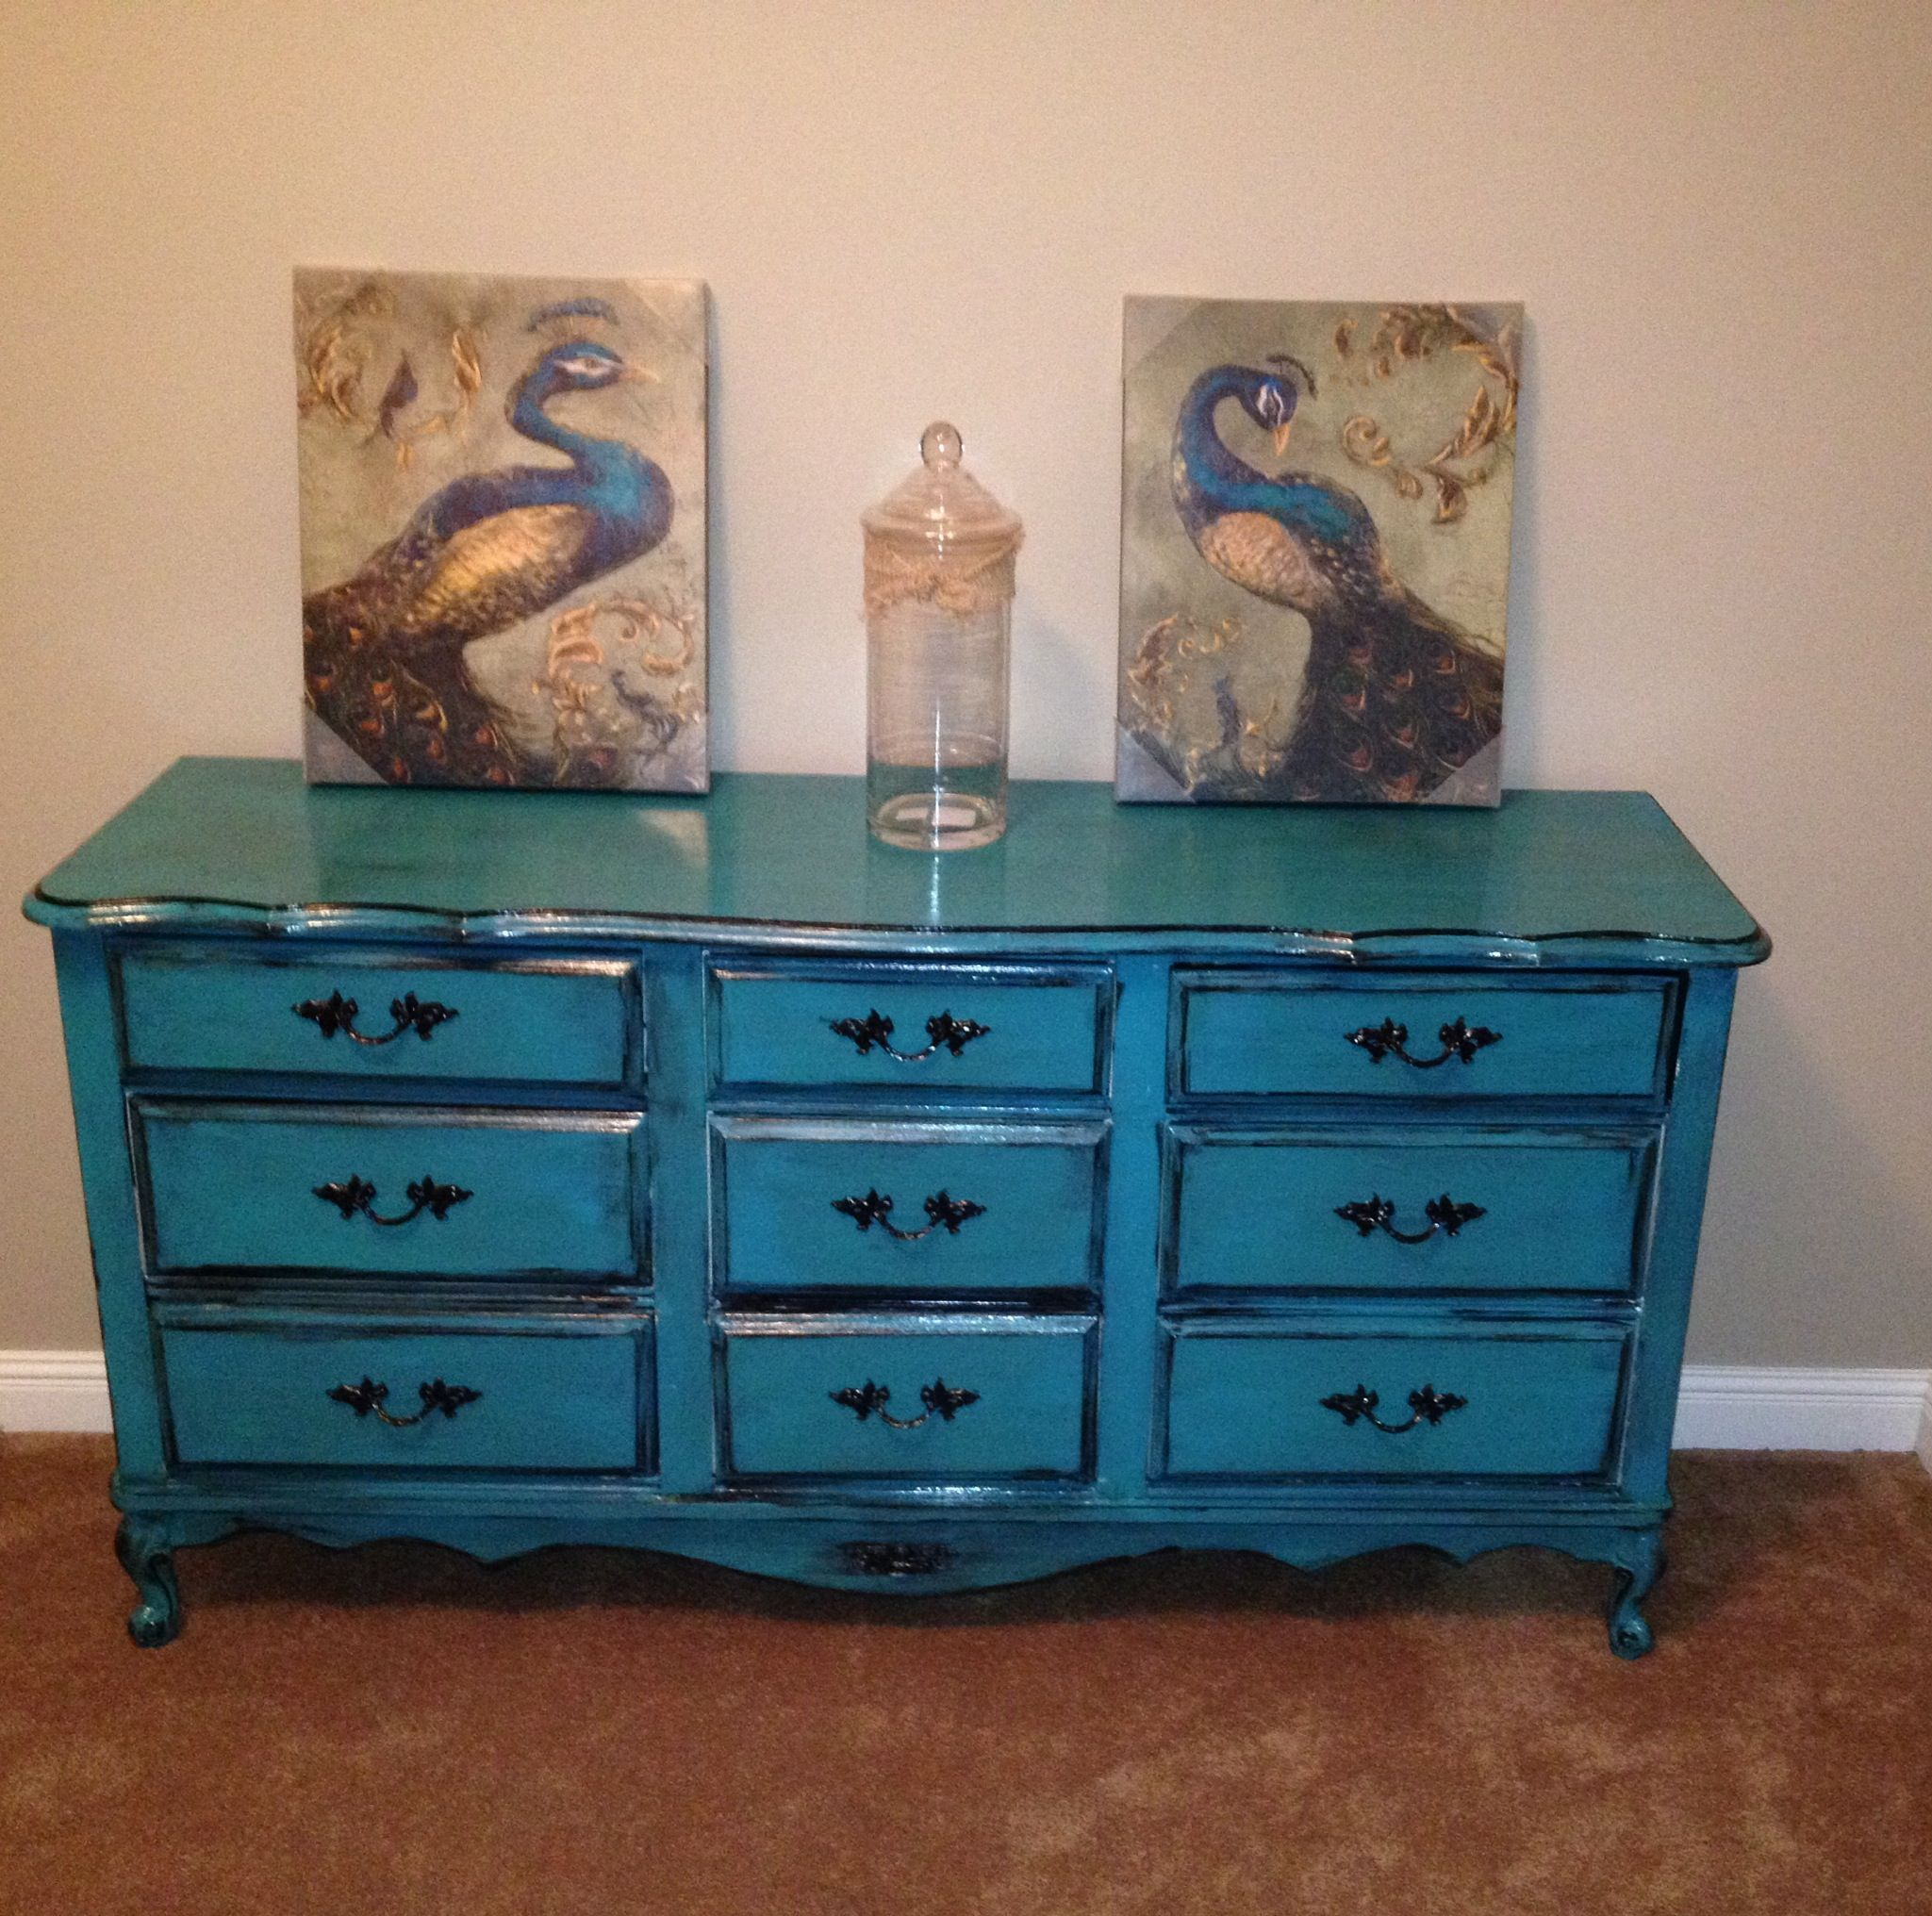 Turquoise French Provencial Dresser Painting Project